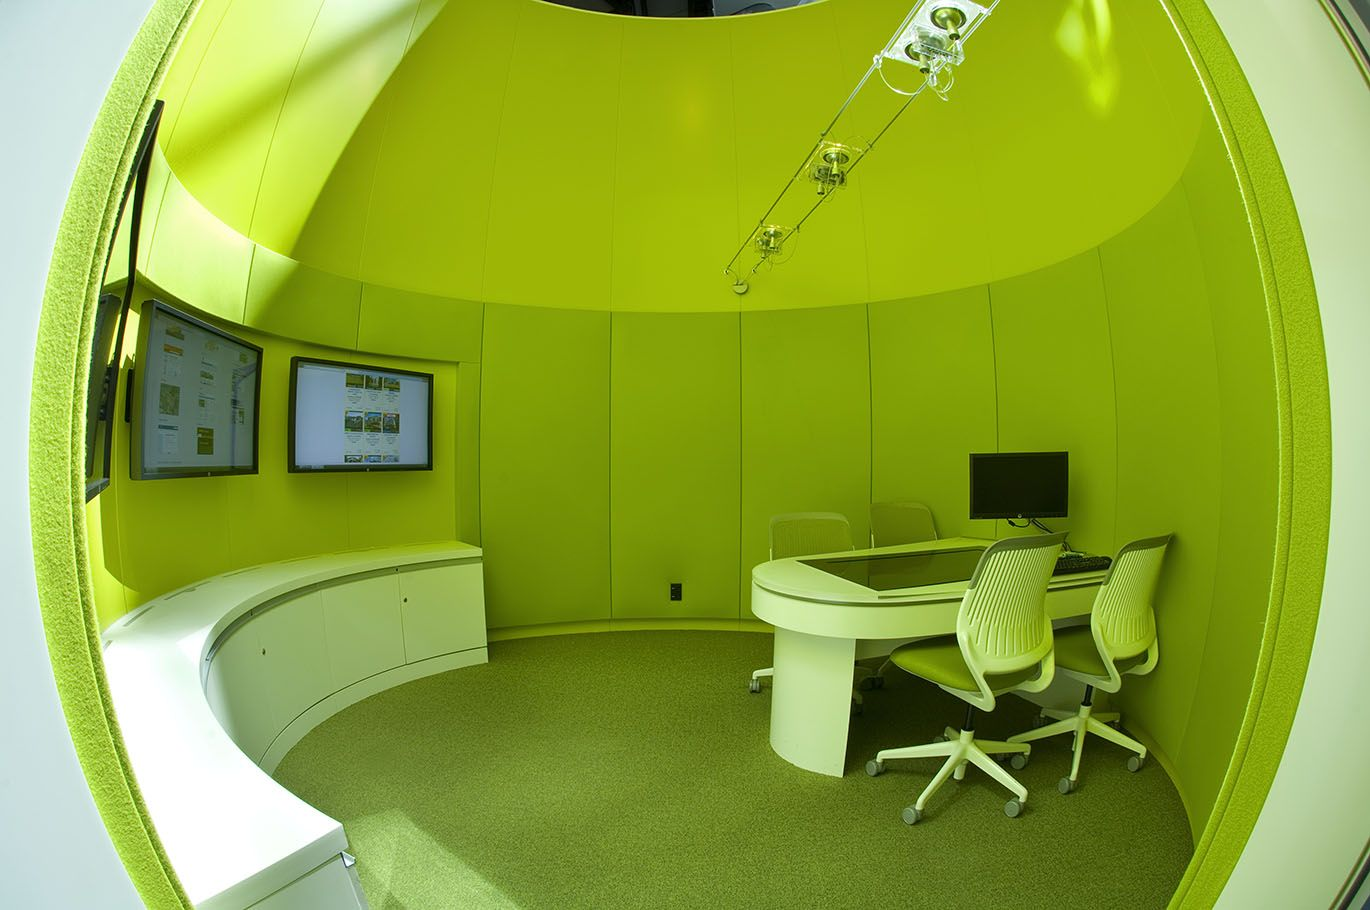 Media Silo Meeting Room With Acoustic Curved Wall Panels By Asona Ltd Nz Wall Panels Meeting Room Commercial Interiors